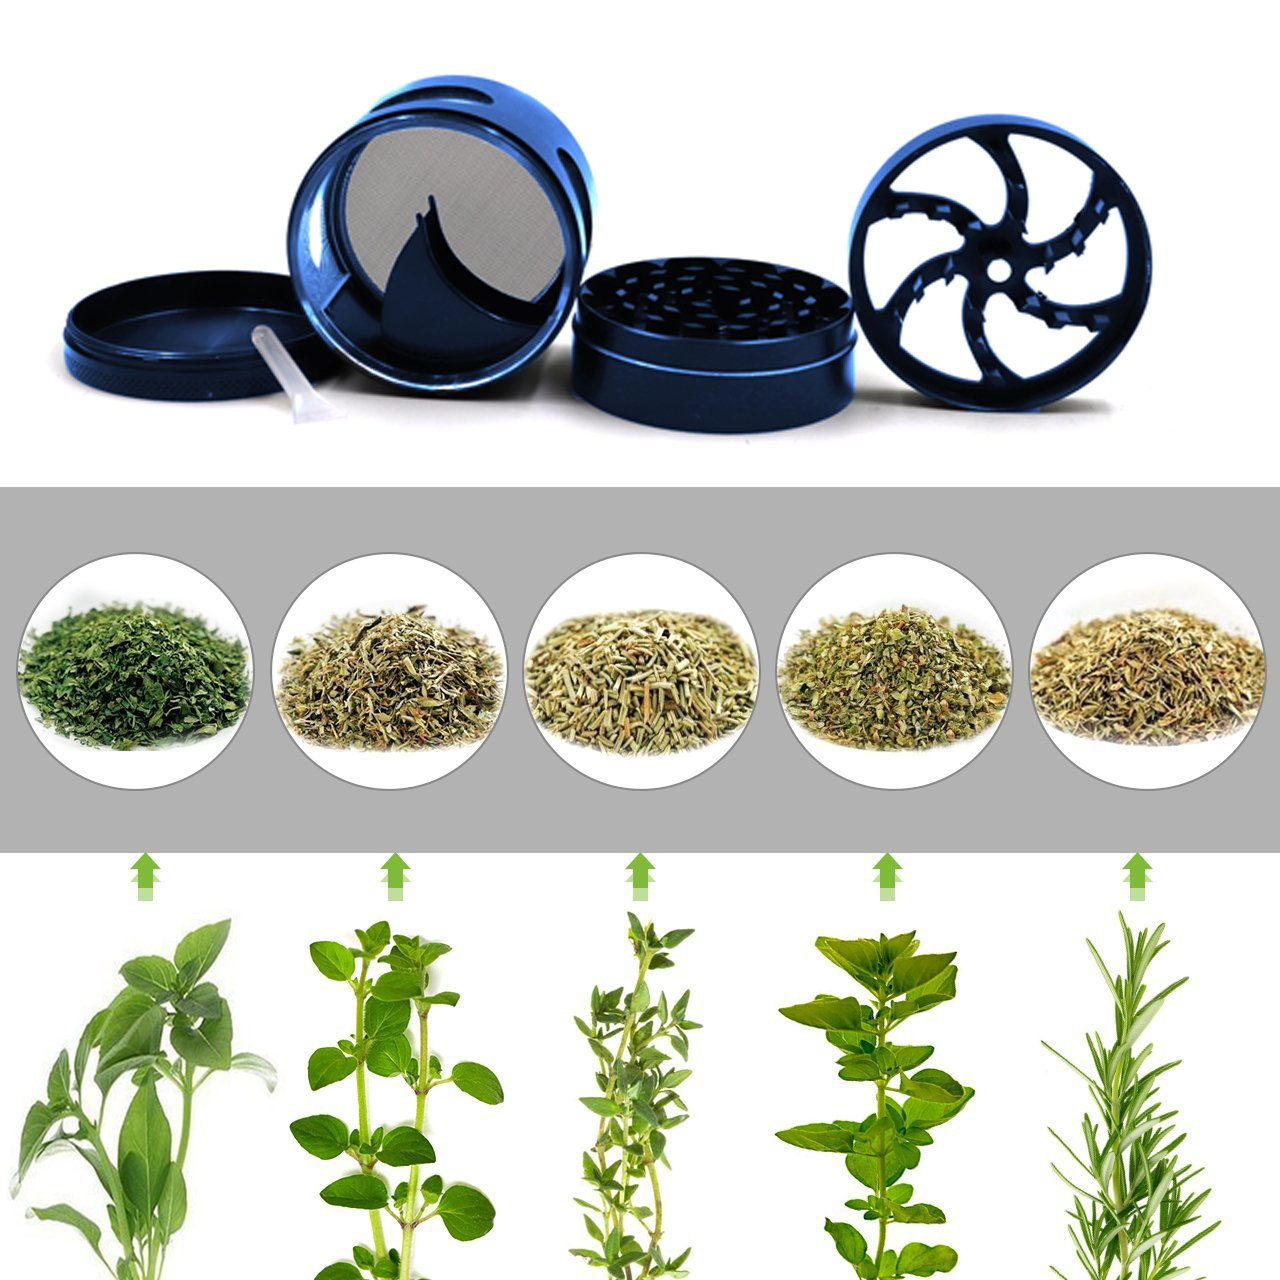 AIMAKE New Design Herb Weed& Spice 4 Piece Large 2.5 Inches Flash Windows Mills Grinder with Pollen Catcher(Blue) by aiMaKE (Image #7)